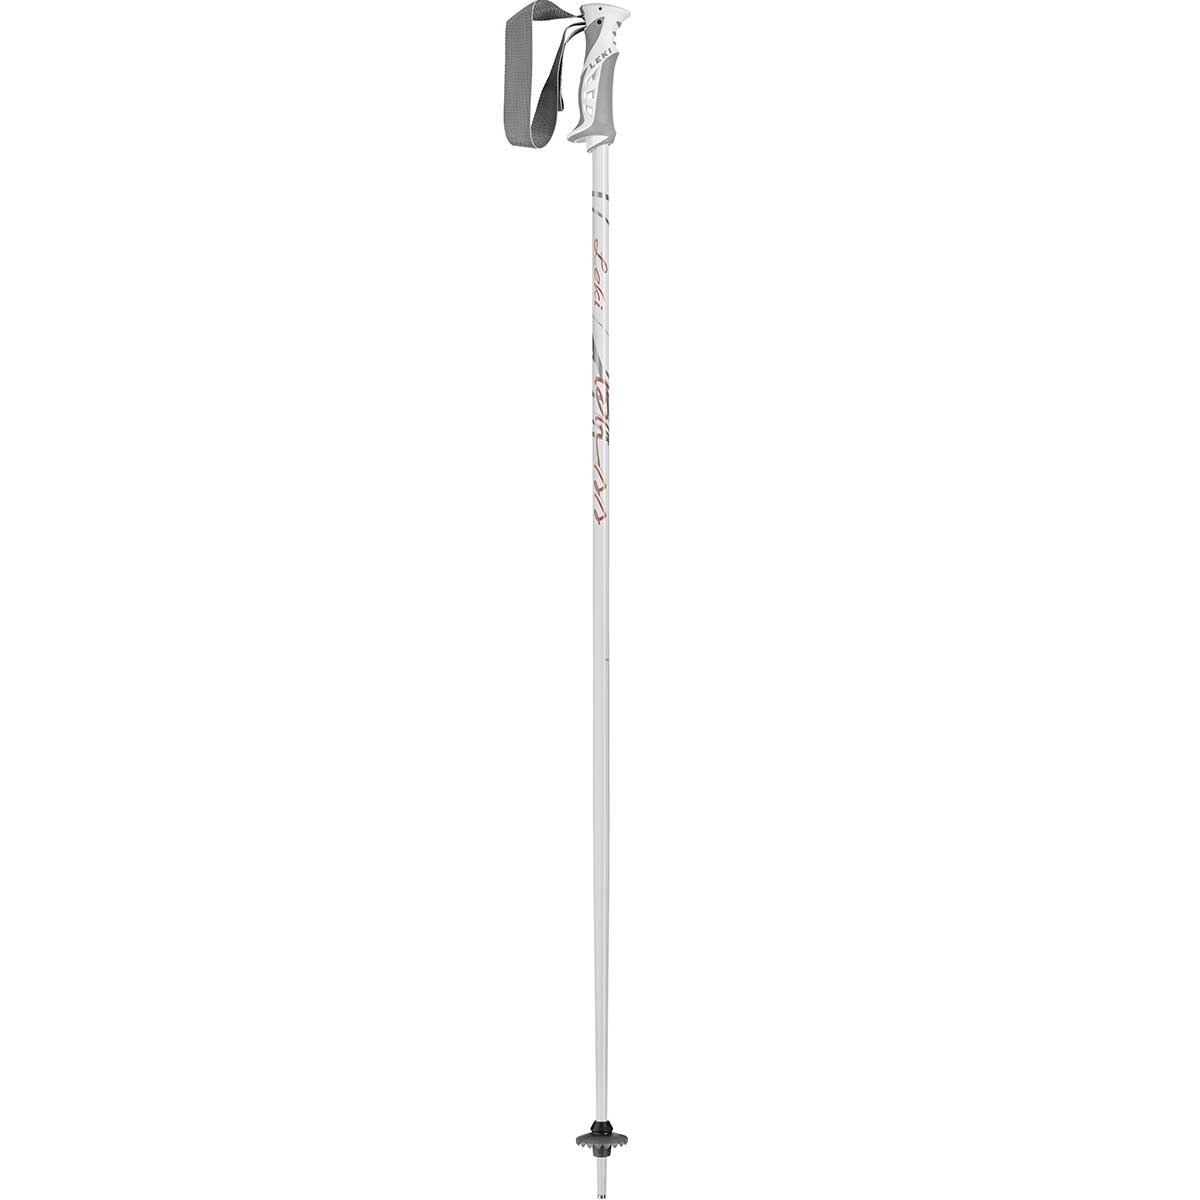 Leki Bliss women's ski pole in white